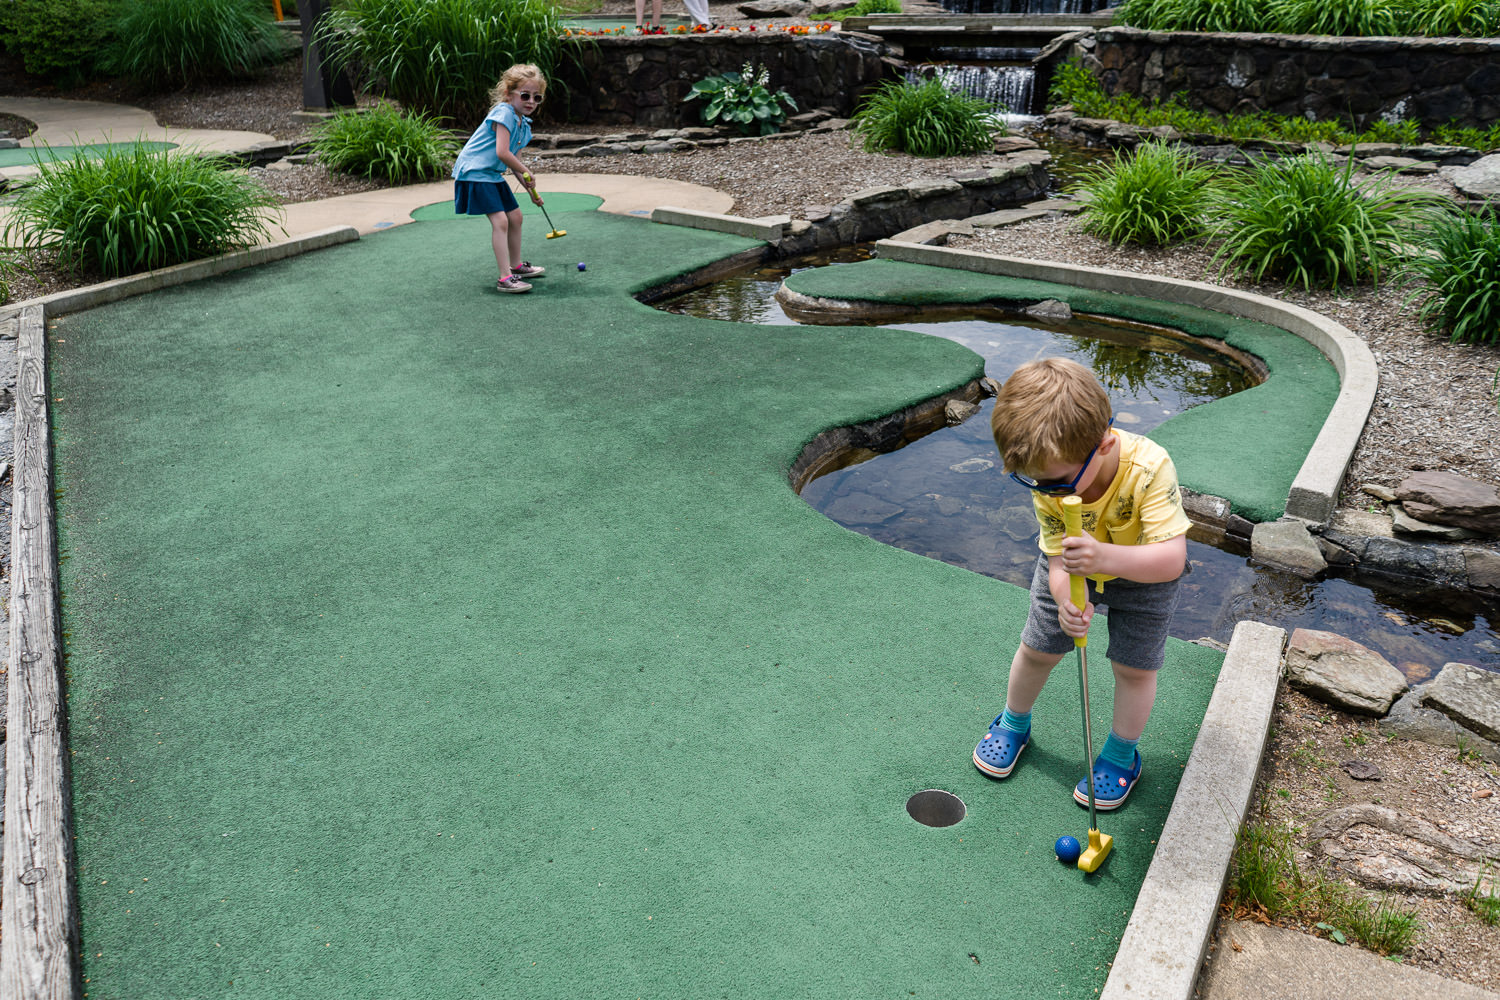 Two children play mini golf at Eisenhower Park.